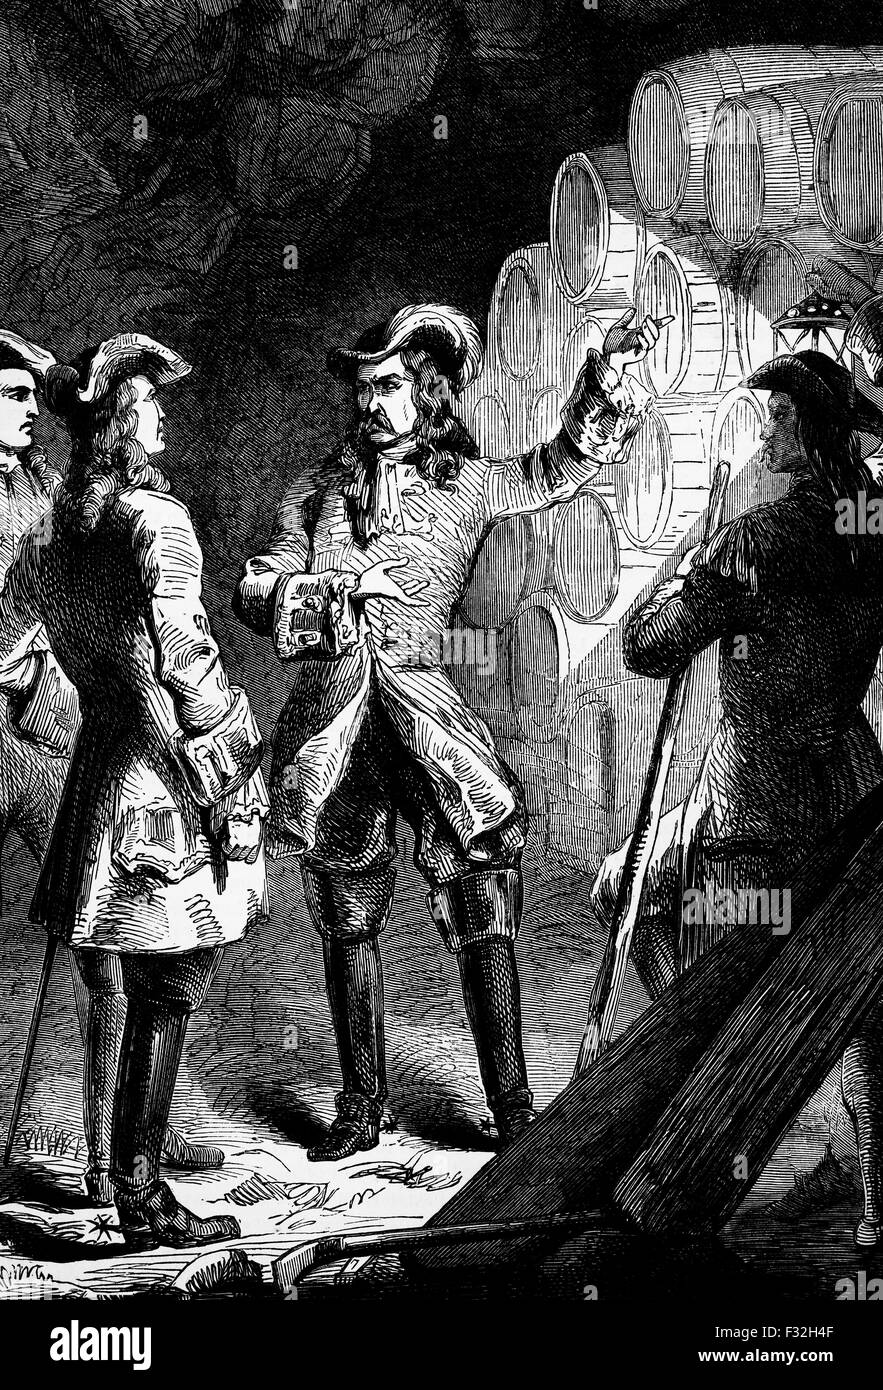 The  Marquis d'Asfeldl, a French Marshal  and a major role player in the War of Spanish Succession. In the seige - Stock Image